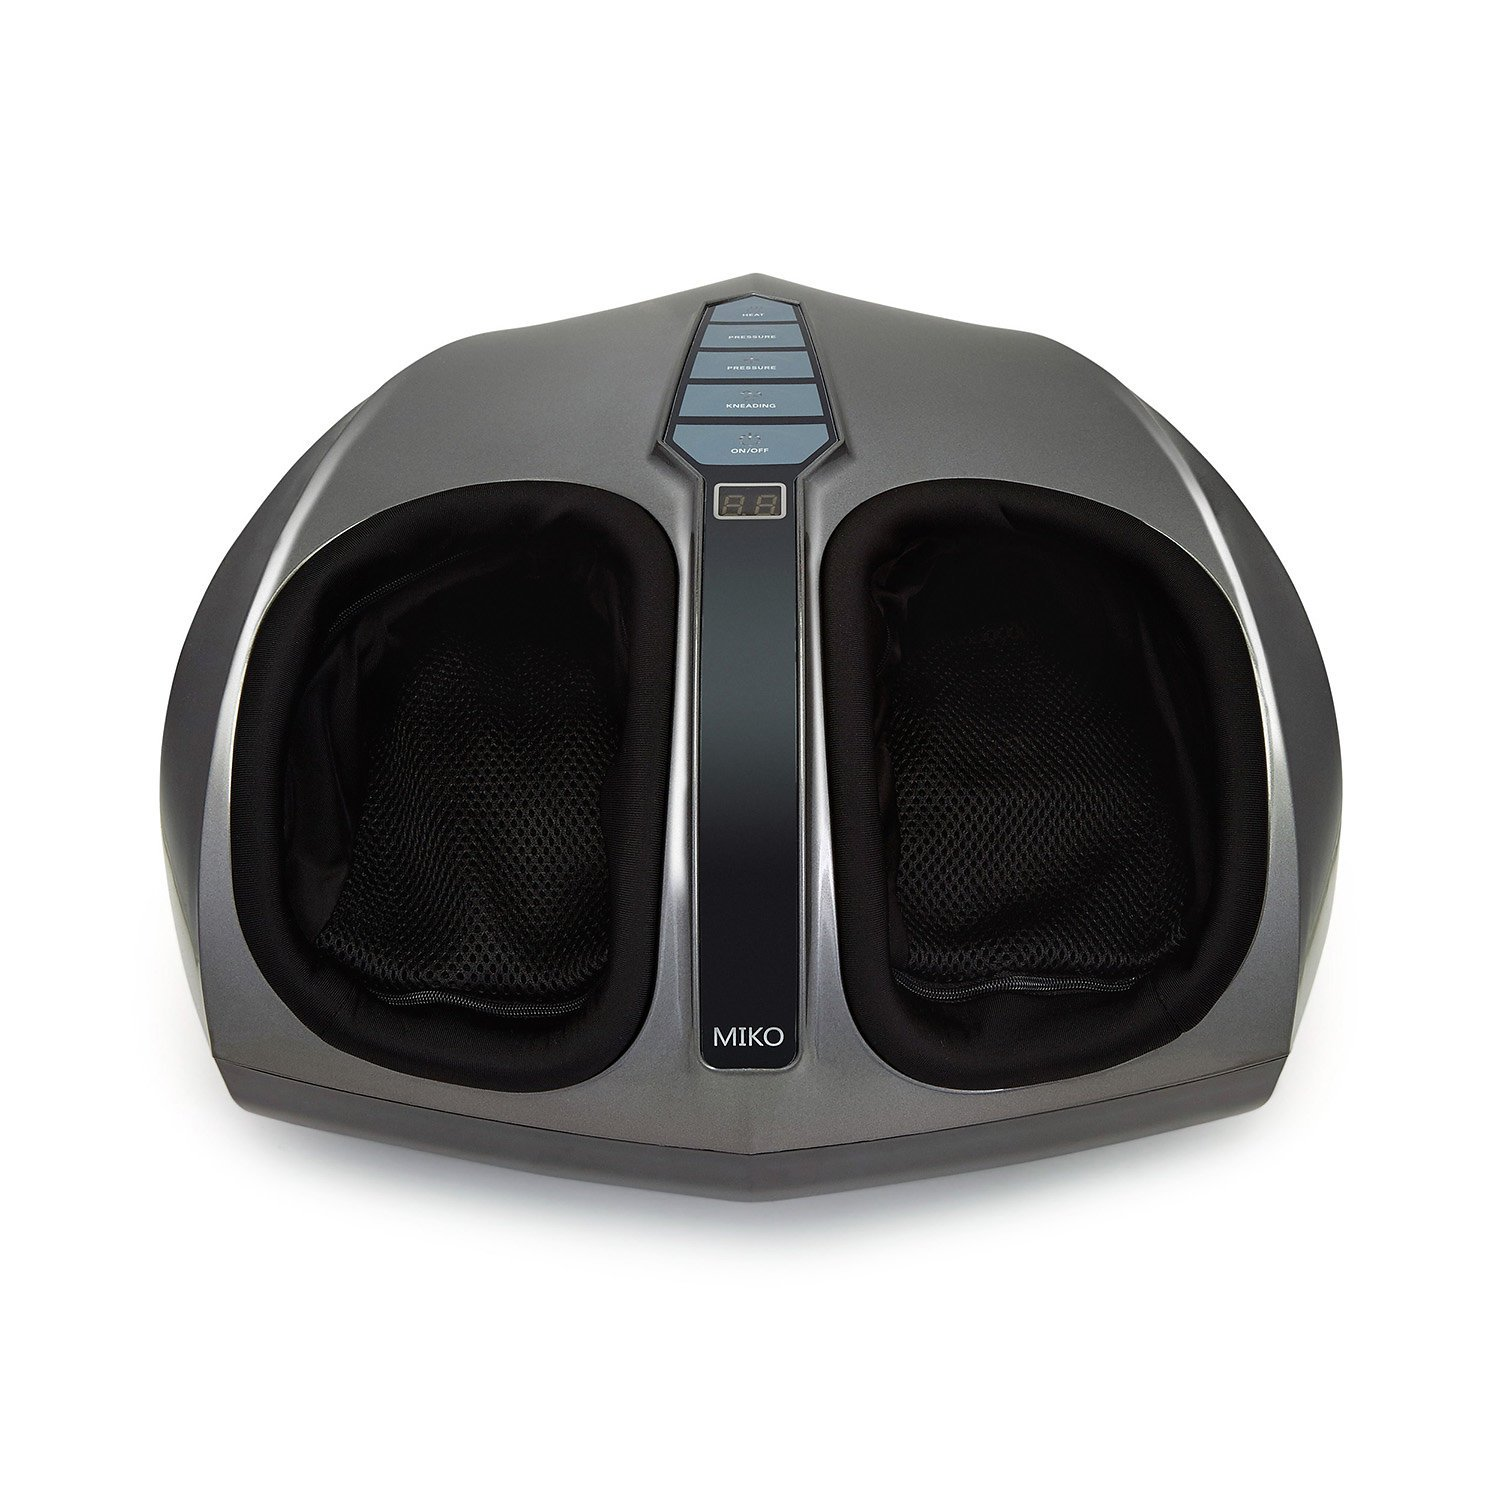 Miko Shiatsu Home Foot Massager Machine With Switchable Heat Charcoal Grey